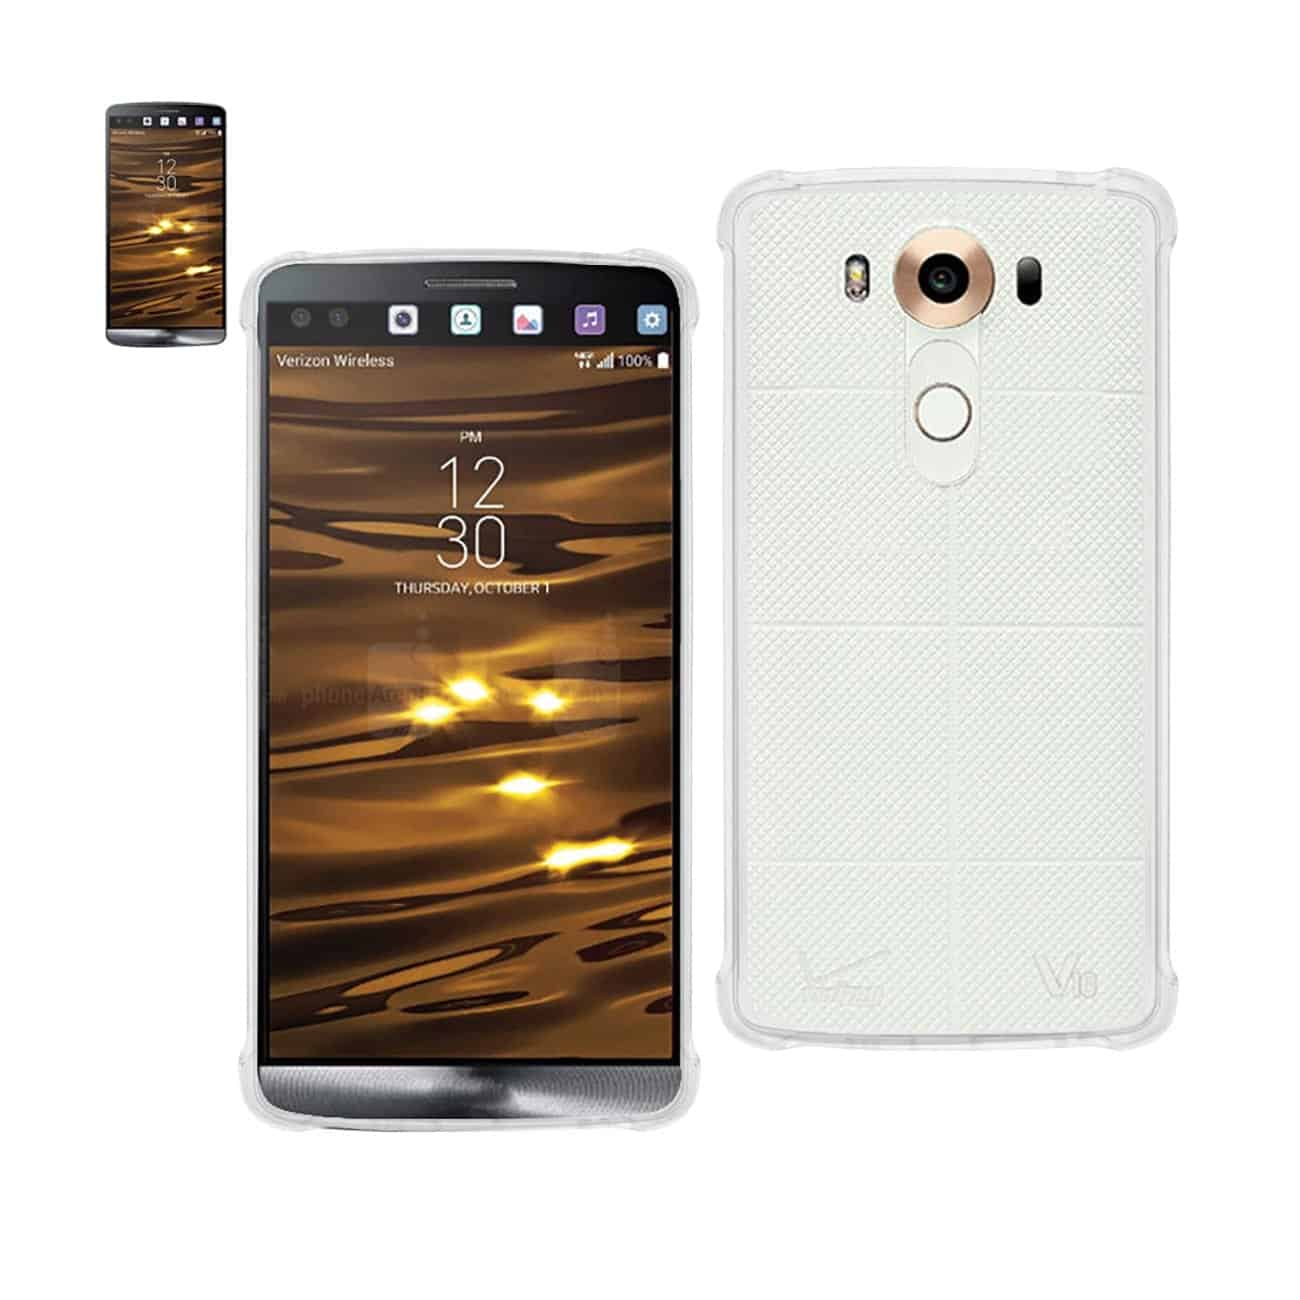 LG V10 MIRROR EFFECT CASE WITH AIR CUSHION PROTECTION IN CLEAR